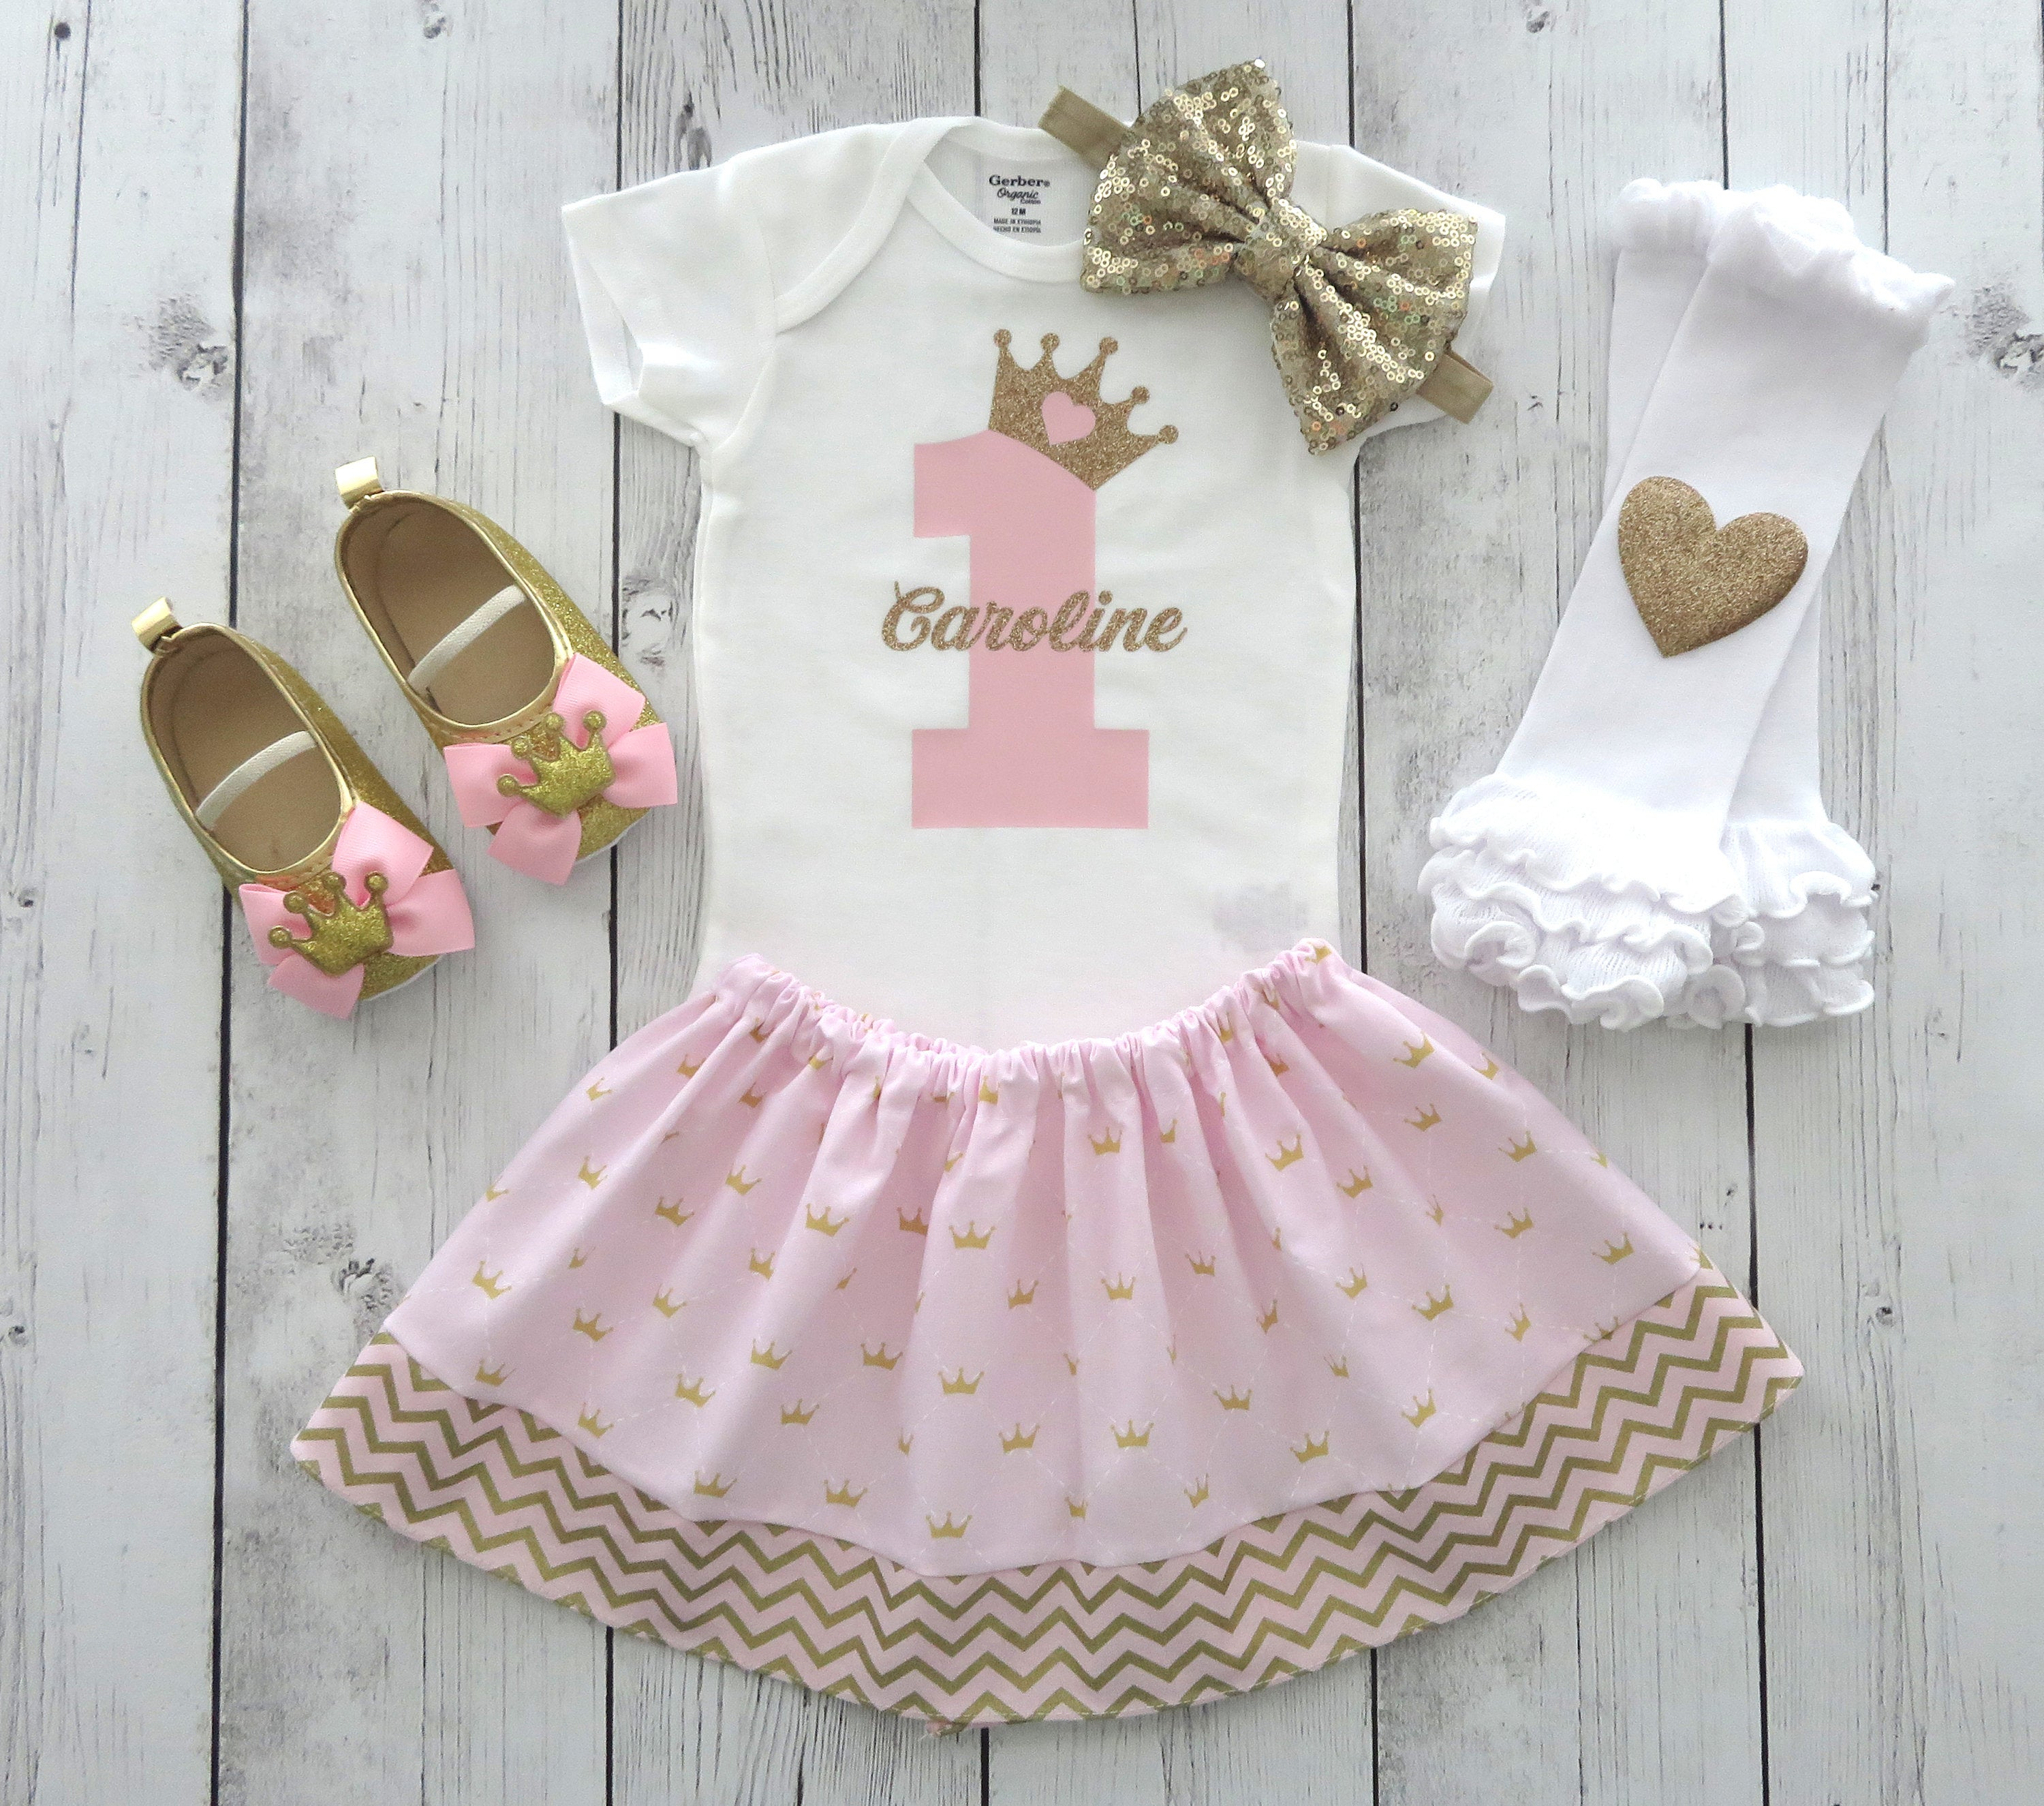 Princess First Birthday Outfit in pink and gold - girl 1st birthday, princess crown, personalized, pink and gold first birthday outfit